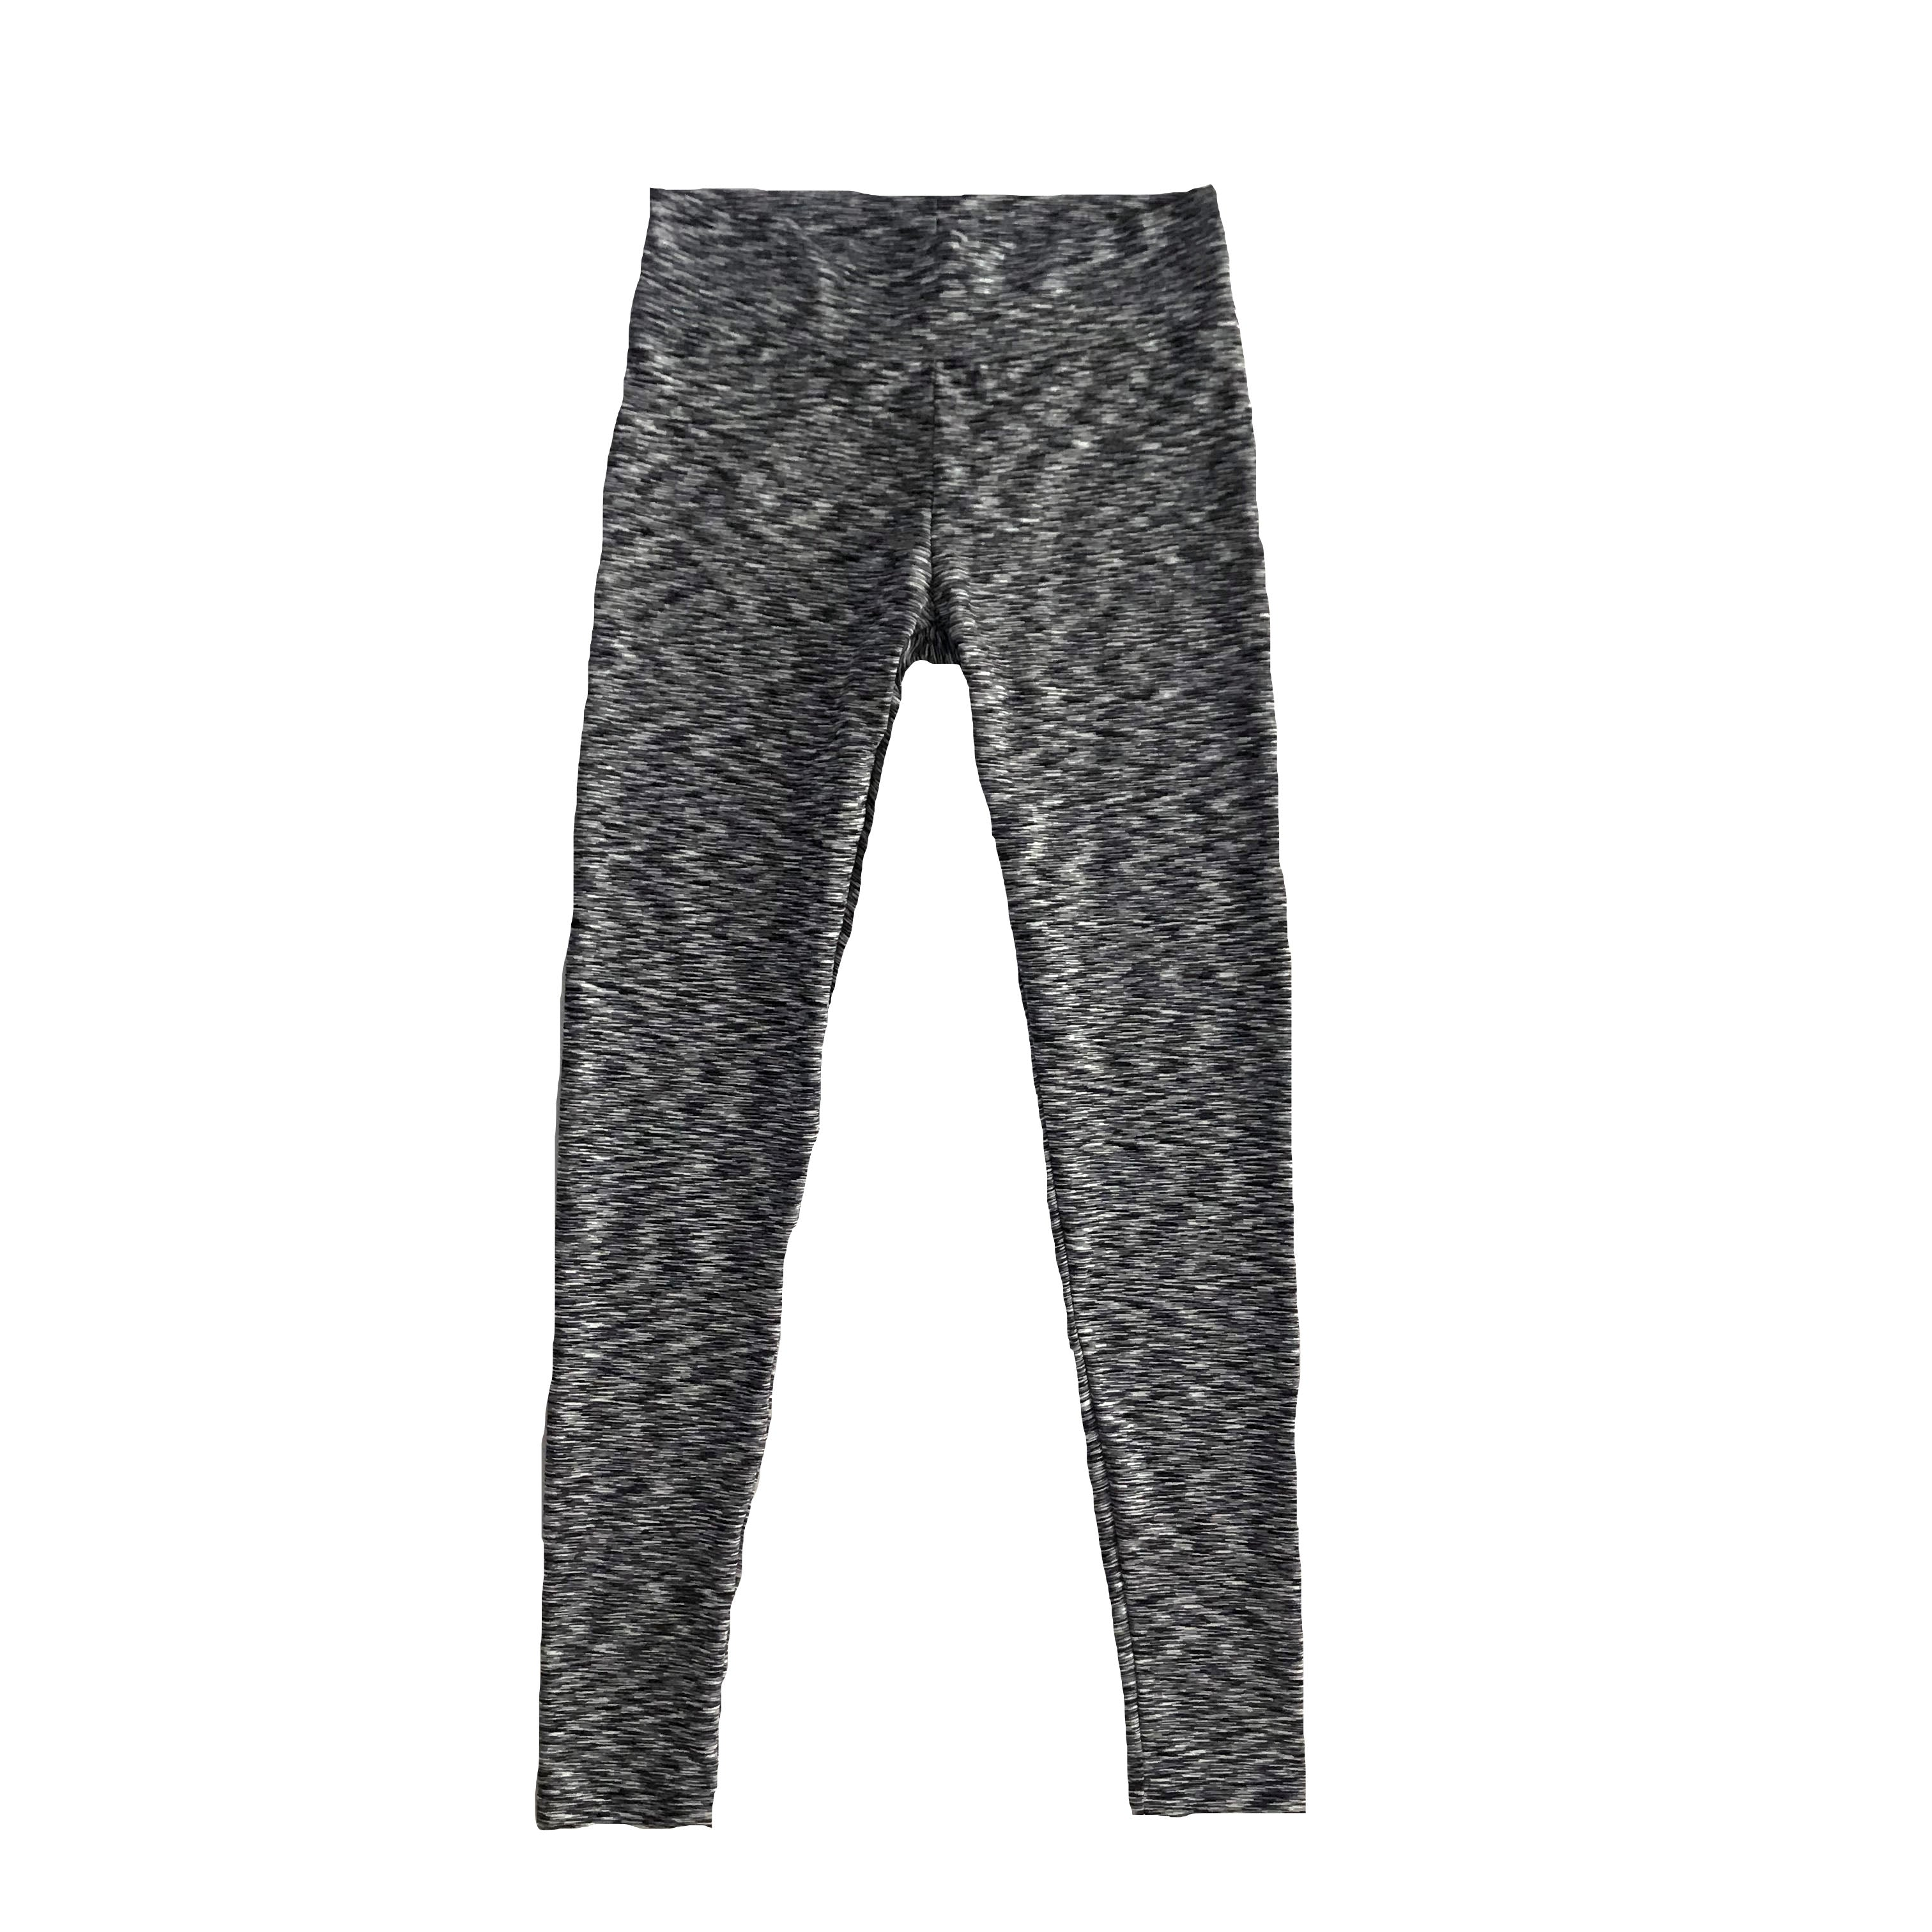 Women's Yoga Pants - monochrome or solid black